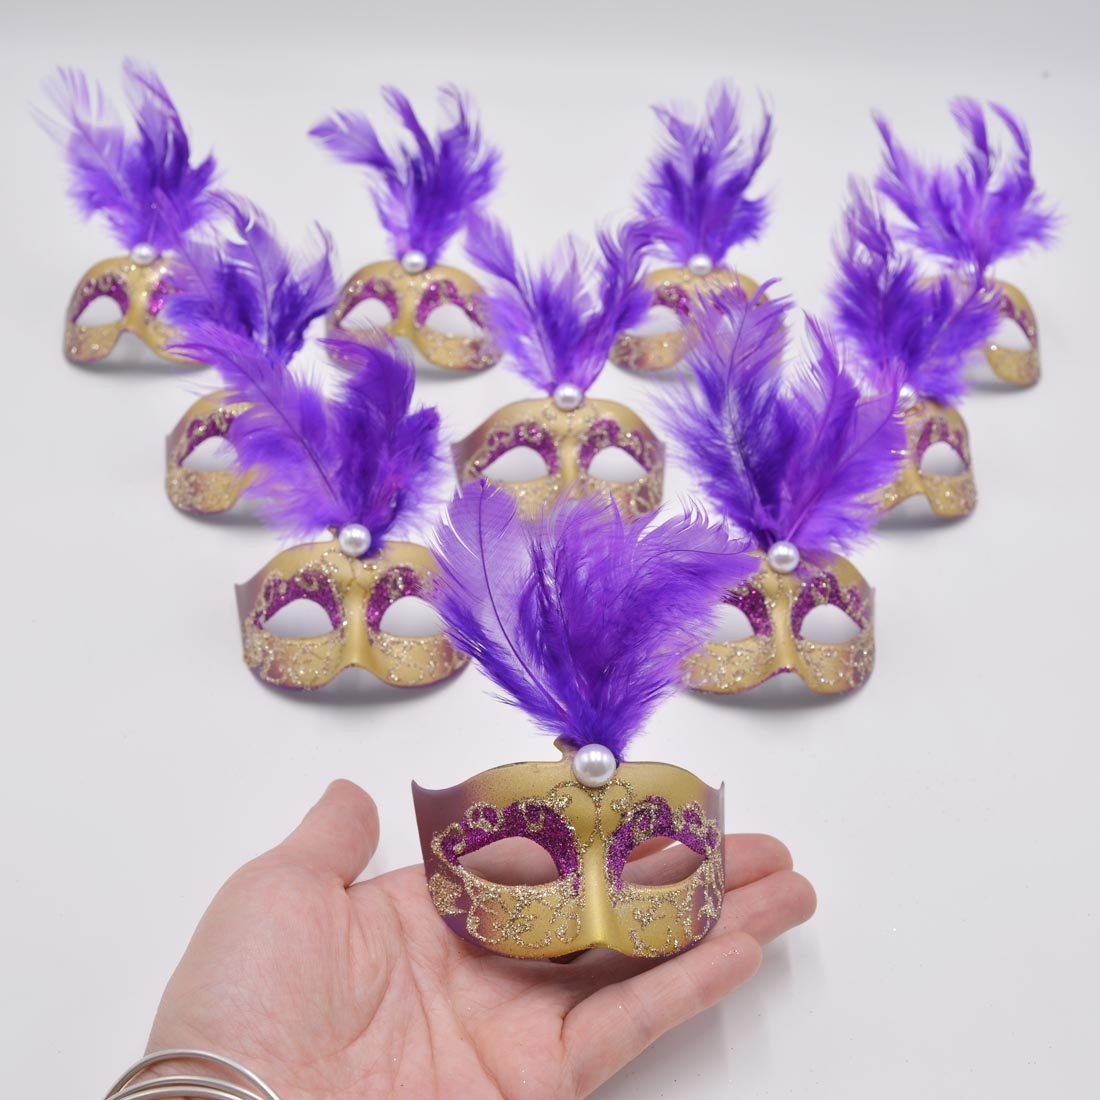 Yiseng 12pcs Luxury Pearl Feather Mini Masks Venetian Masquerade Party Decoration Novelty Gifts (Purple)